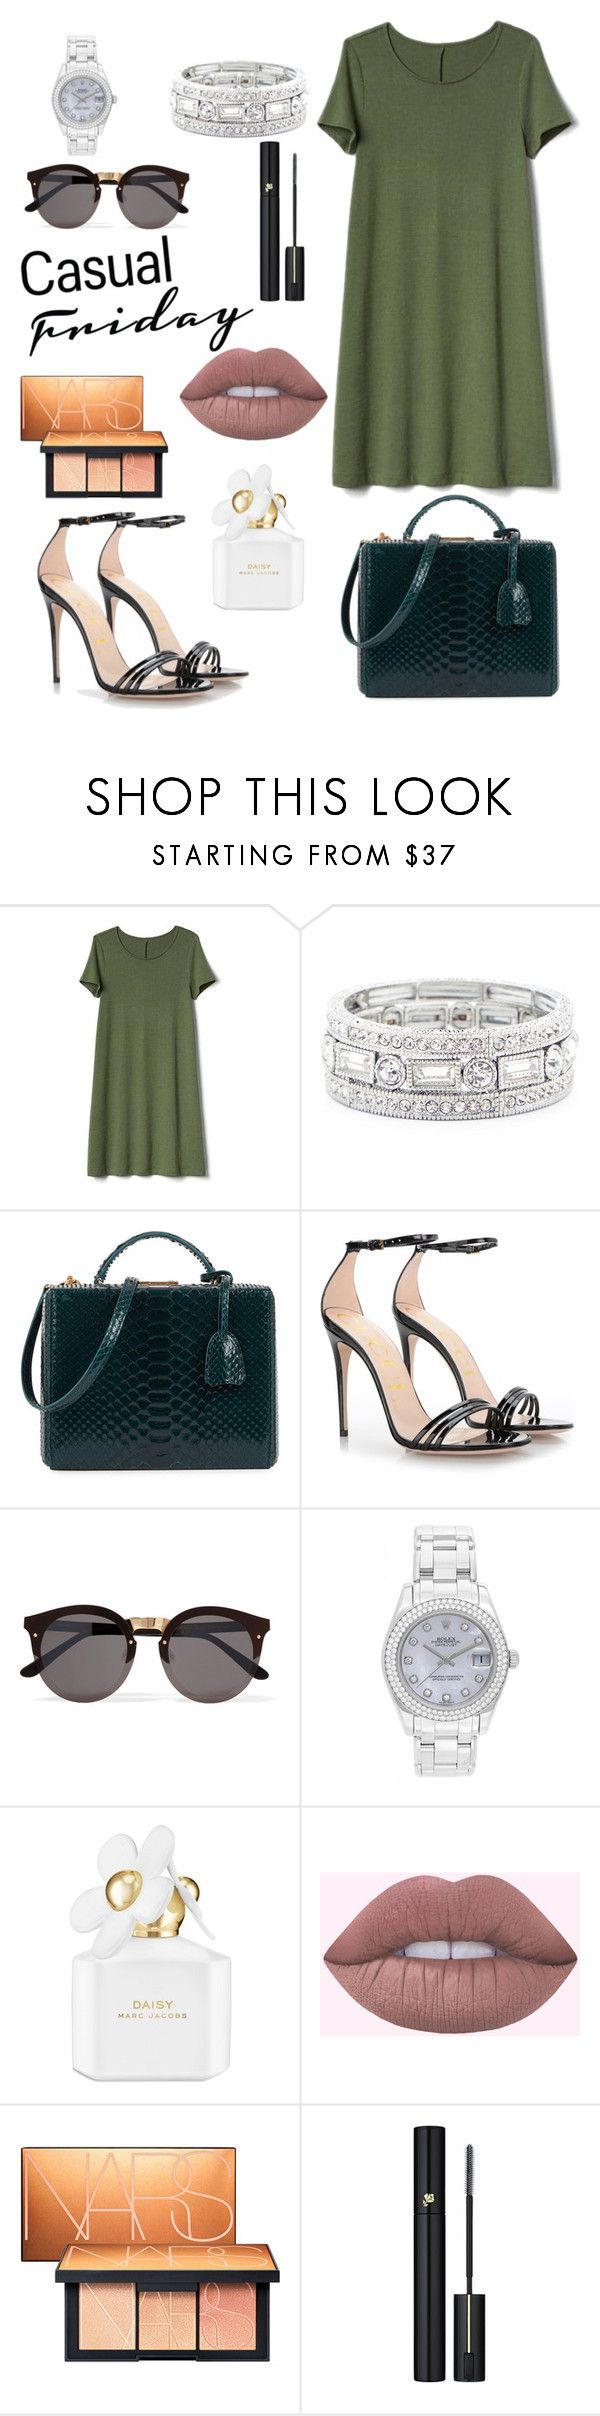 """Untitled #111"" by alexanutella on Polyvore featuring Gap, Sole Society, Mark Cross, Gucci, Illesteva, Rolex, Marc Jacobs, NARS Cosmetics and Lancôme"